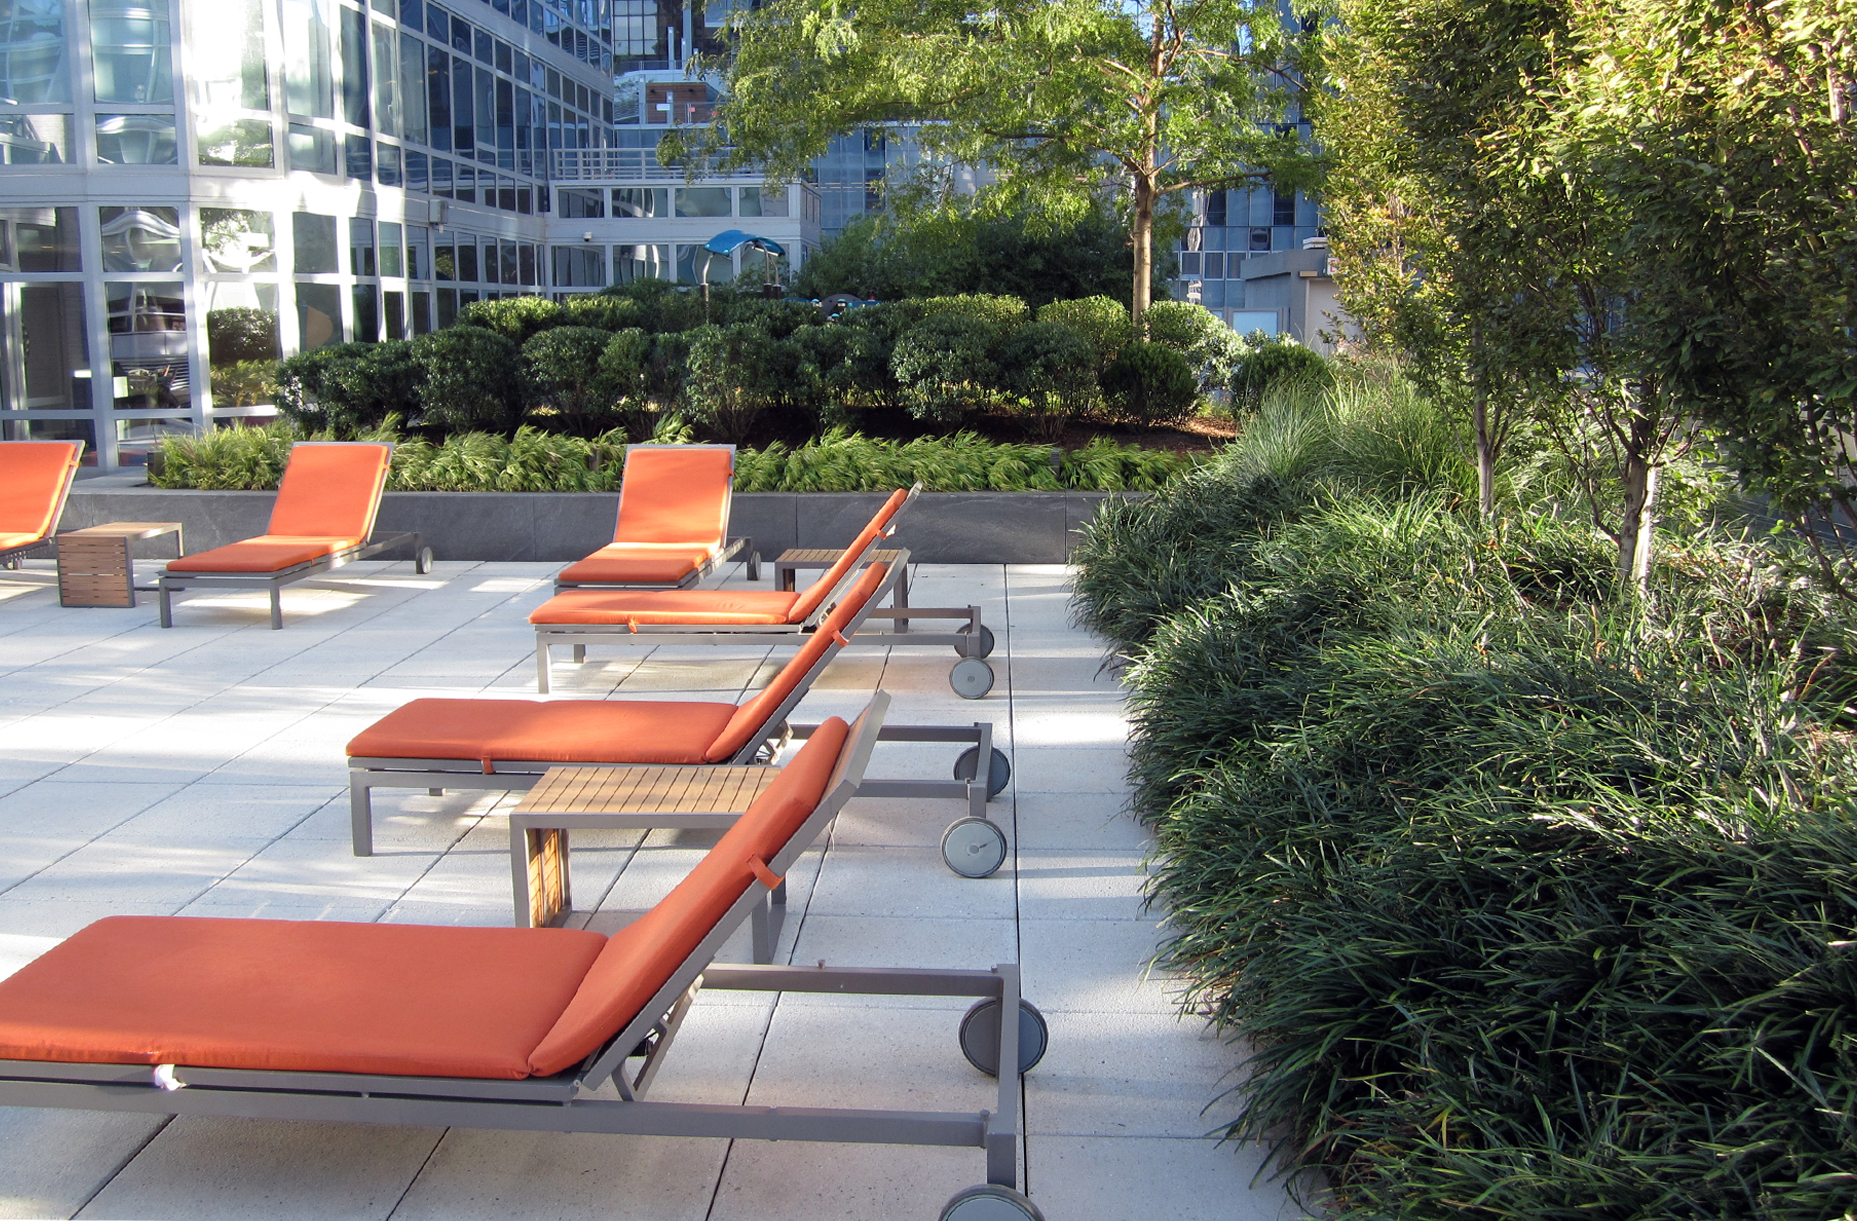 Element Condominium landscape architecture